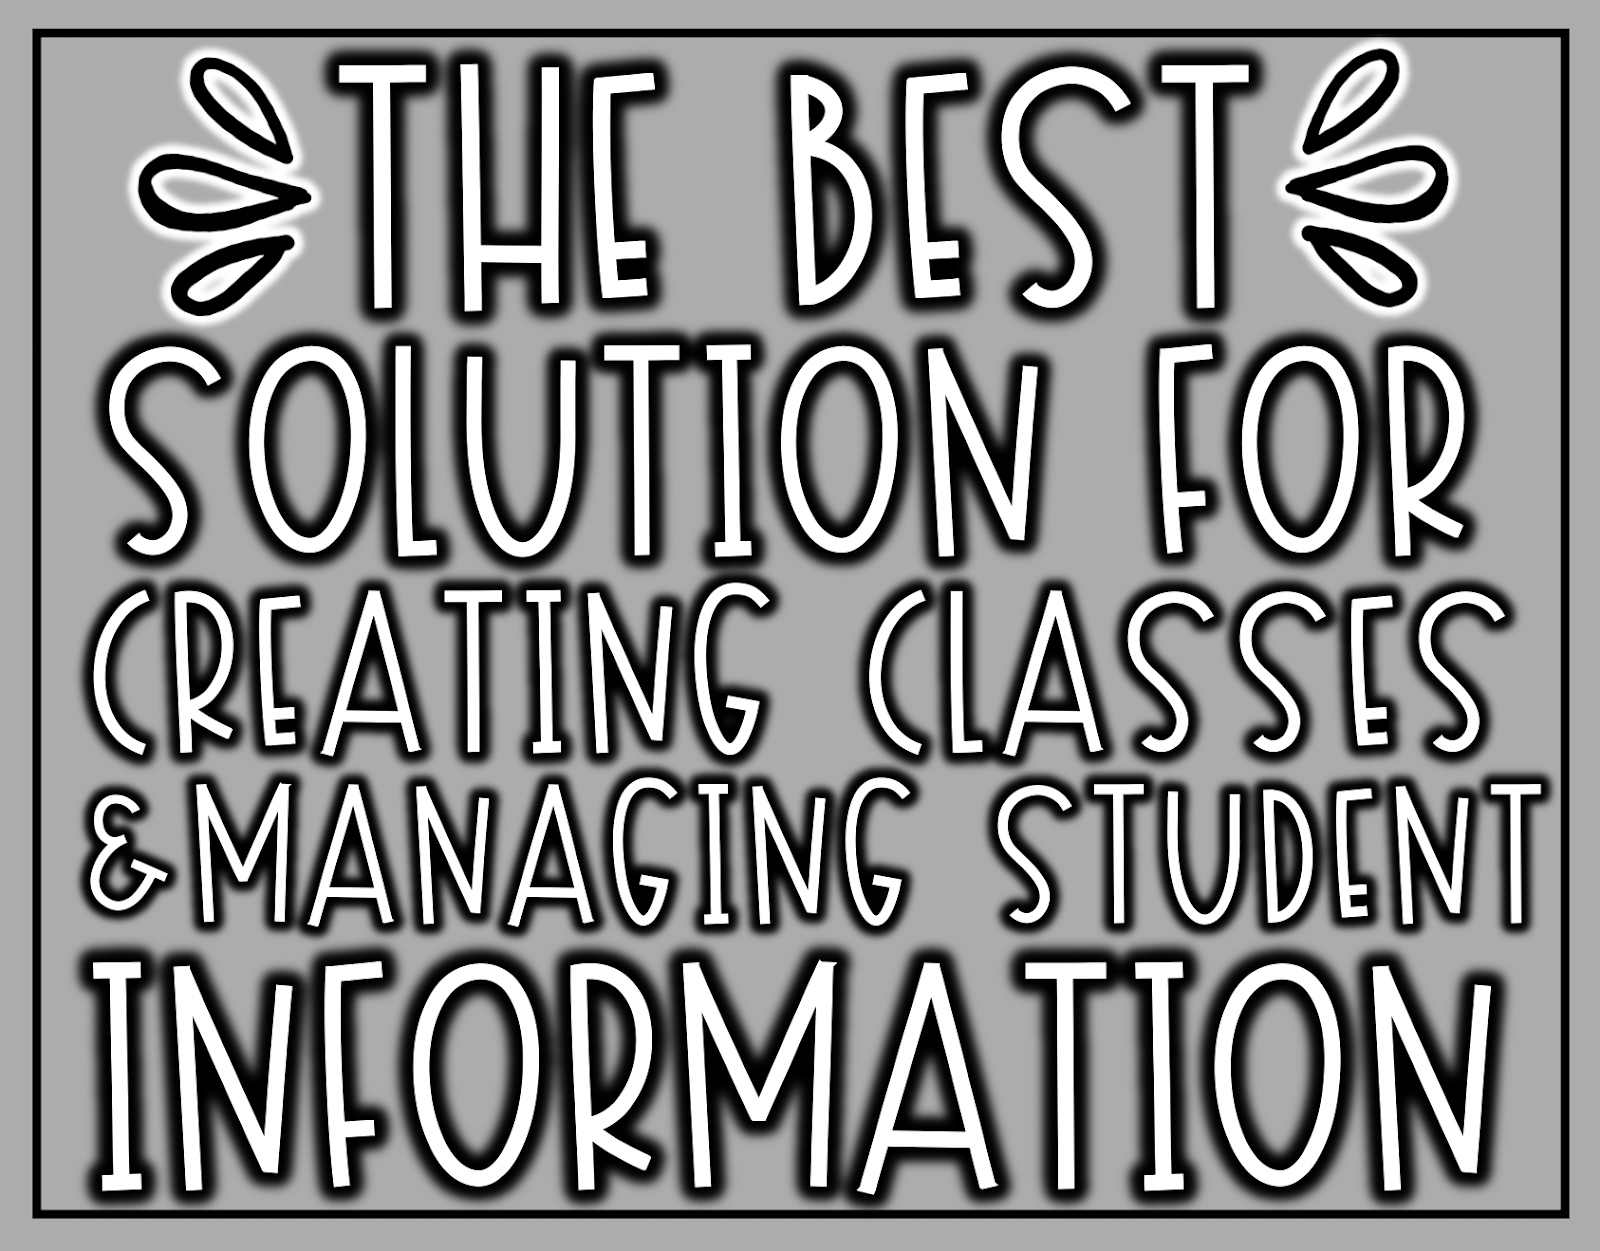 Class Composer: The Best Solution for Creating Classes and Managing Student Information